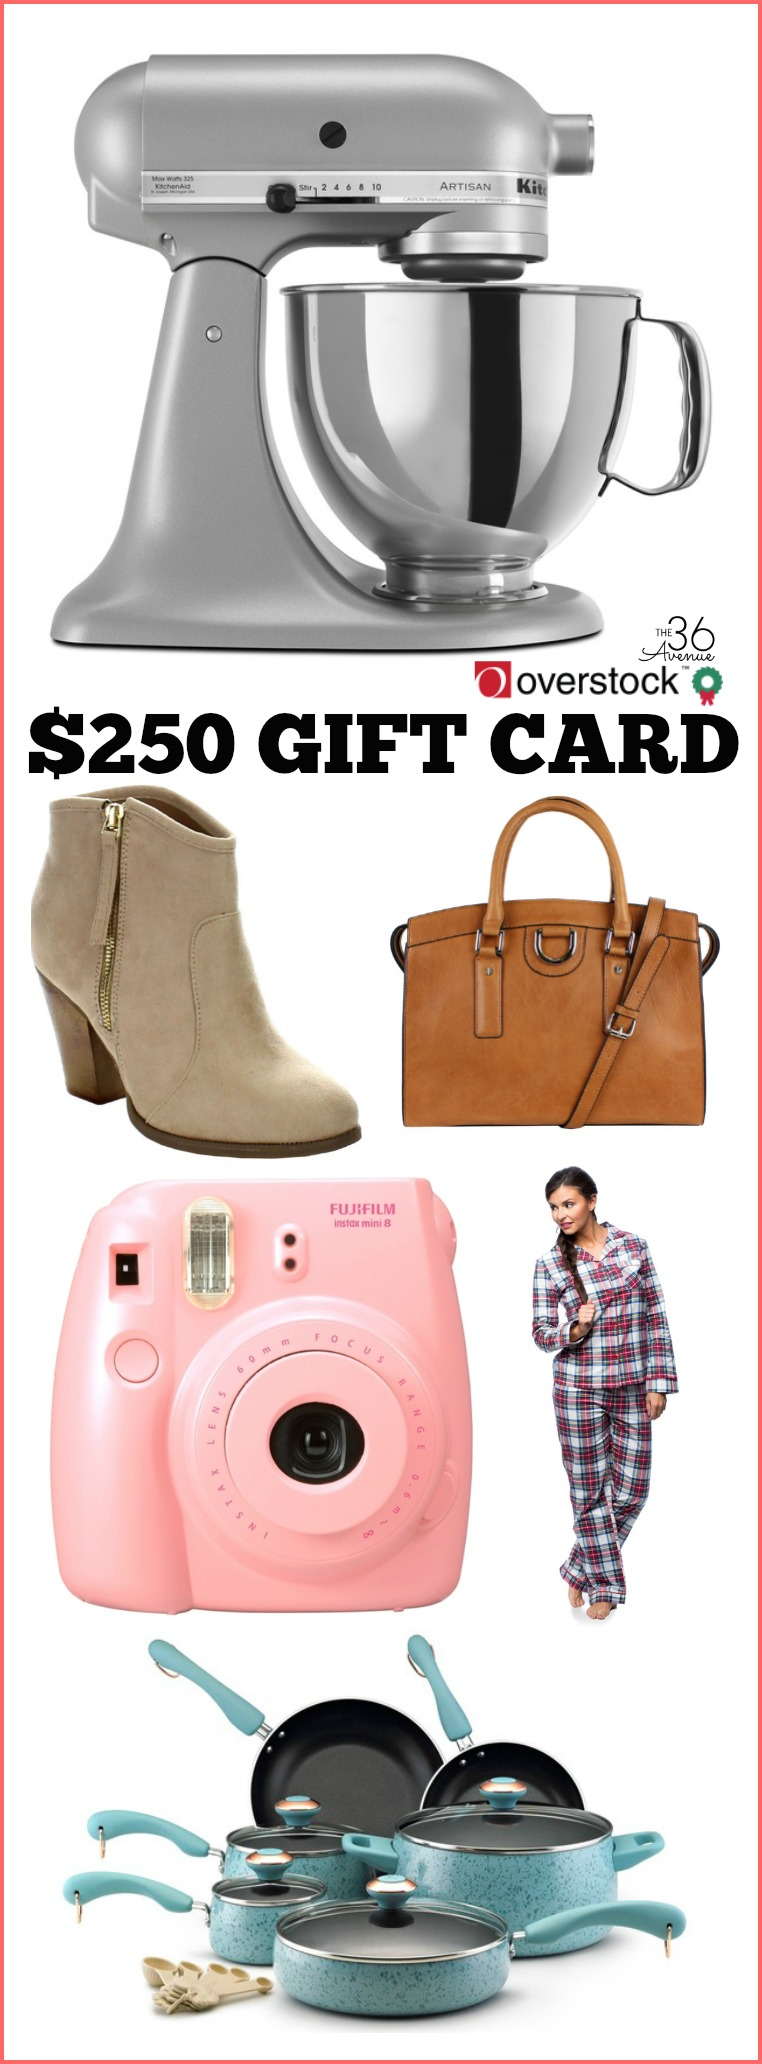 Overstock Giveaway the36thavenue.com